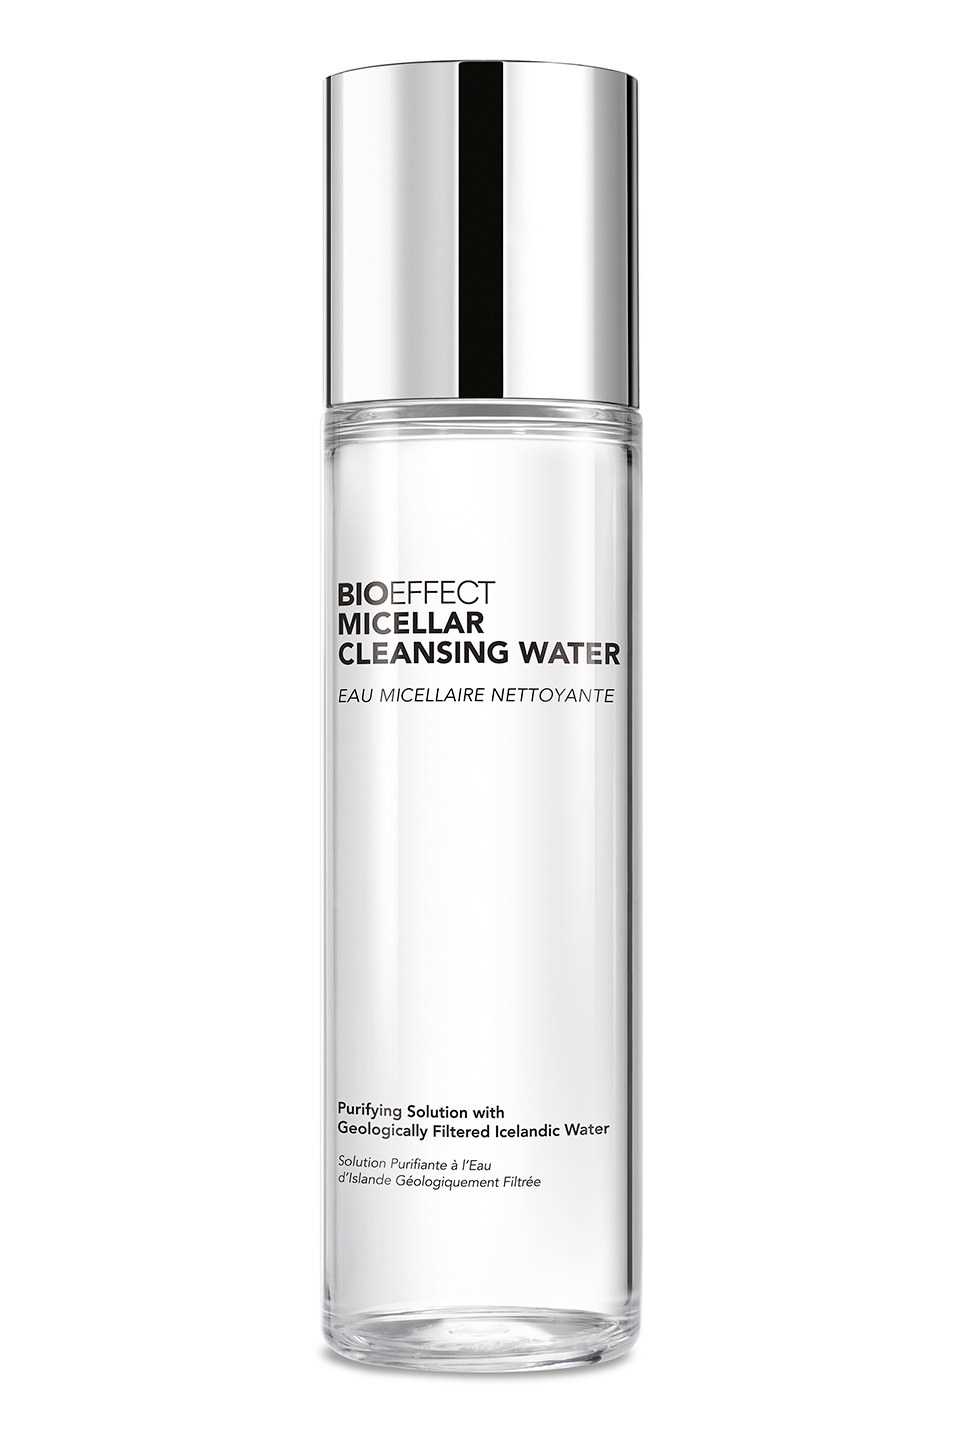 BioEffect-Micellar-Cleansing-Water.jpg